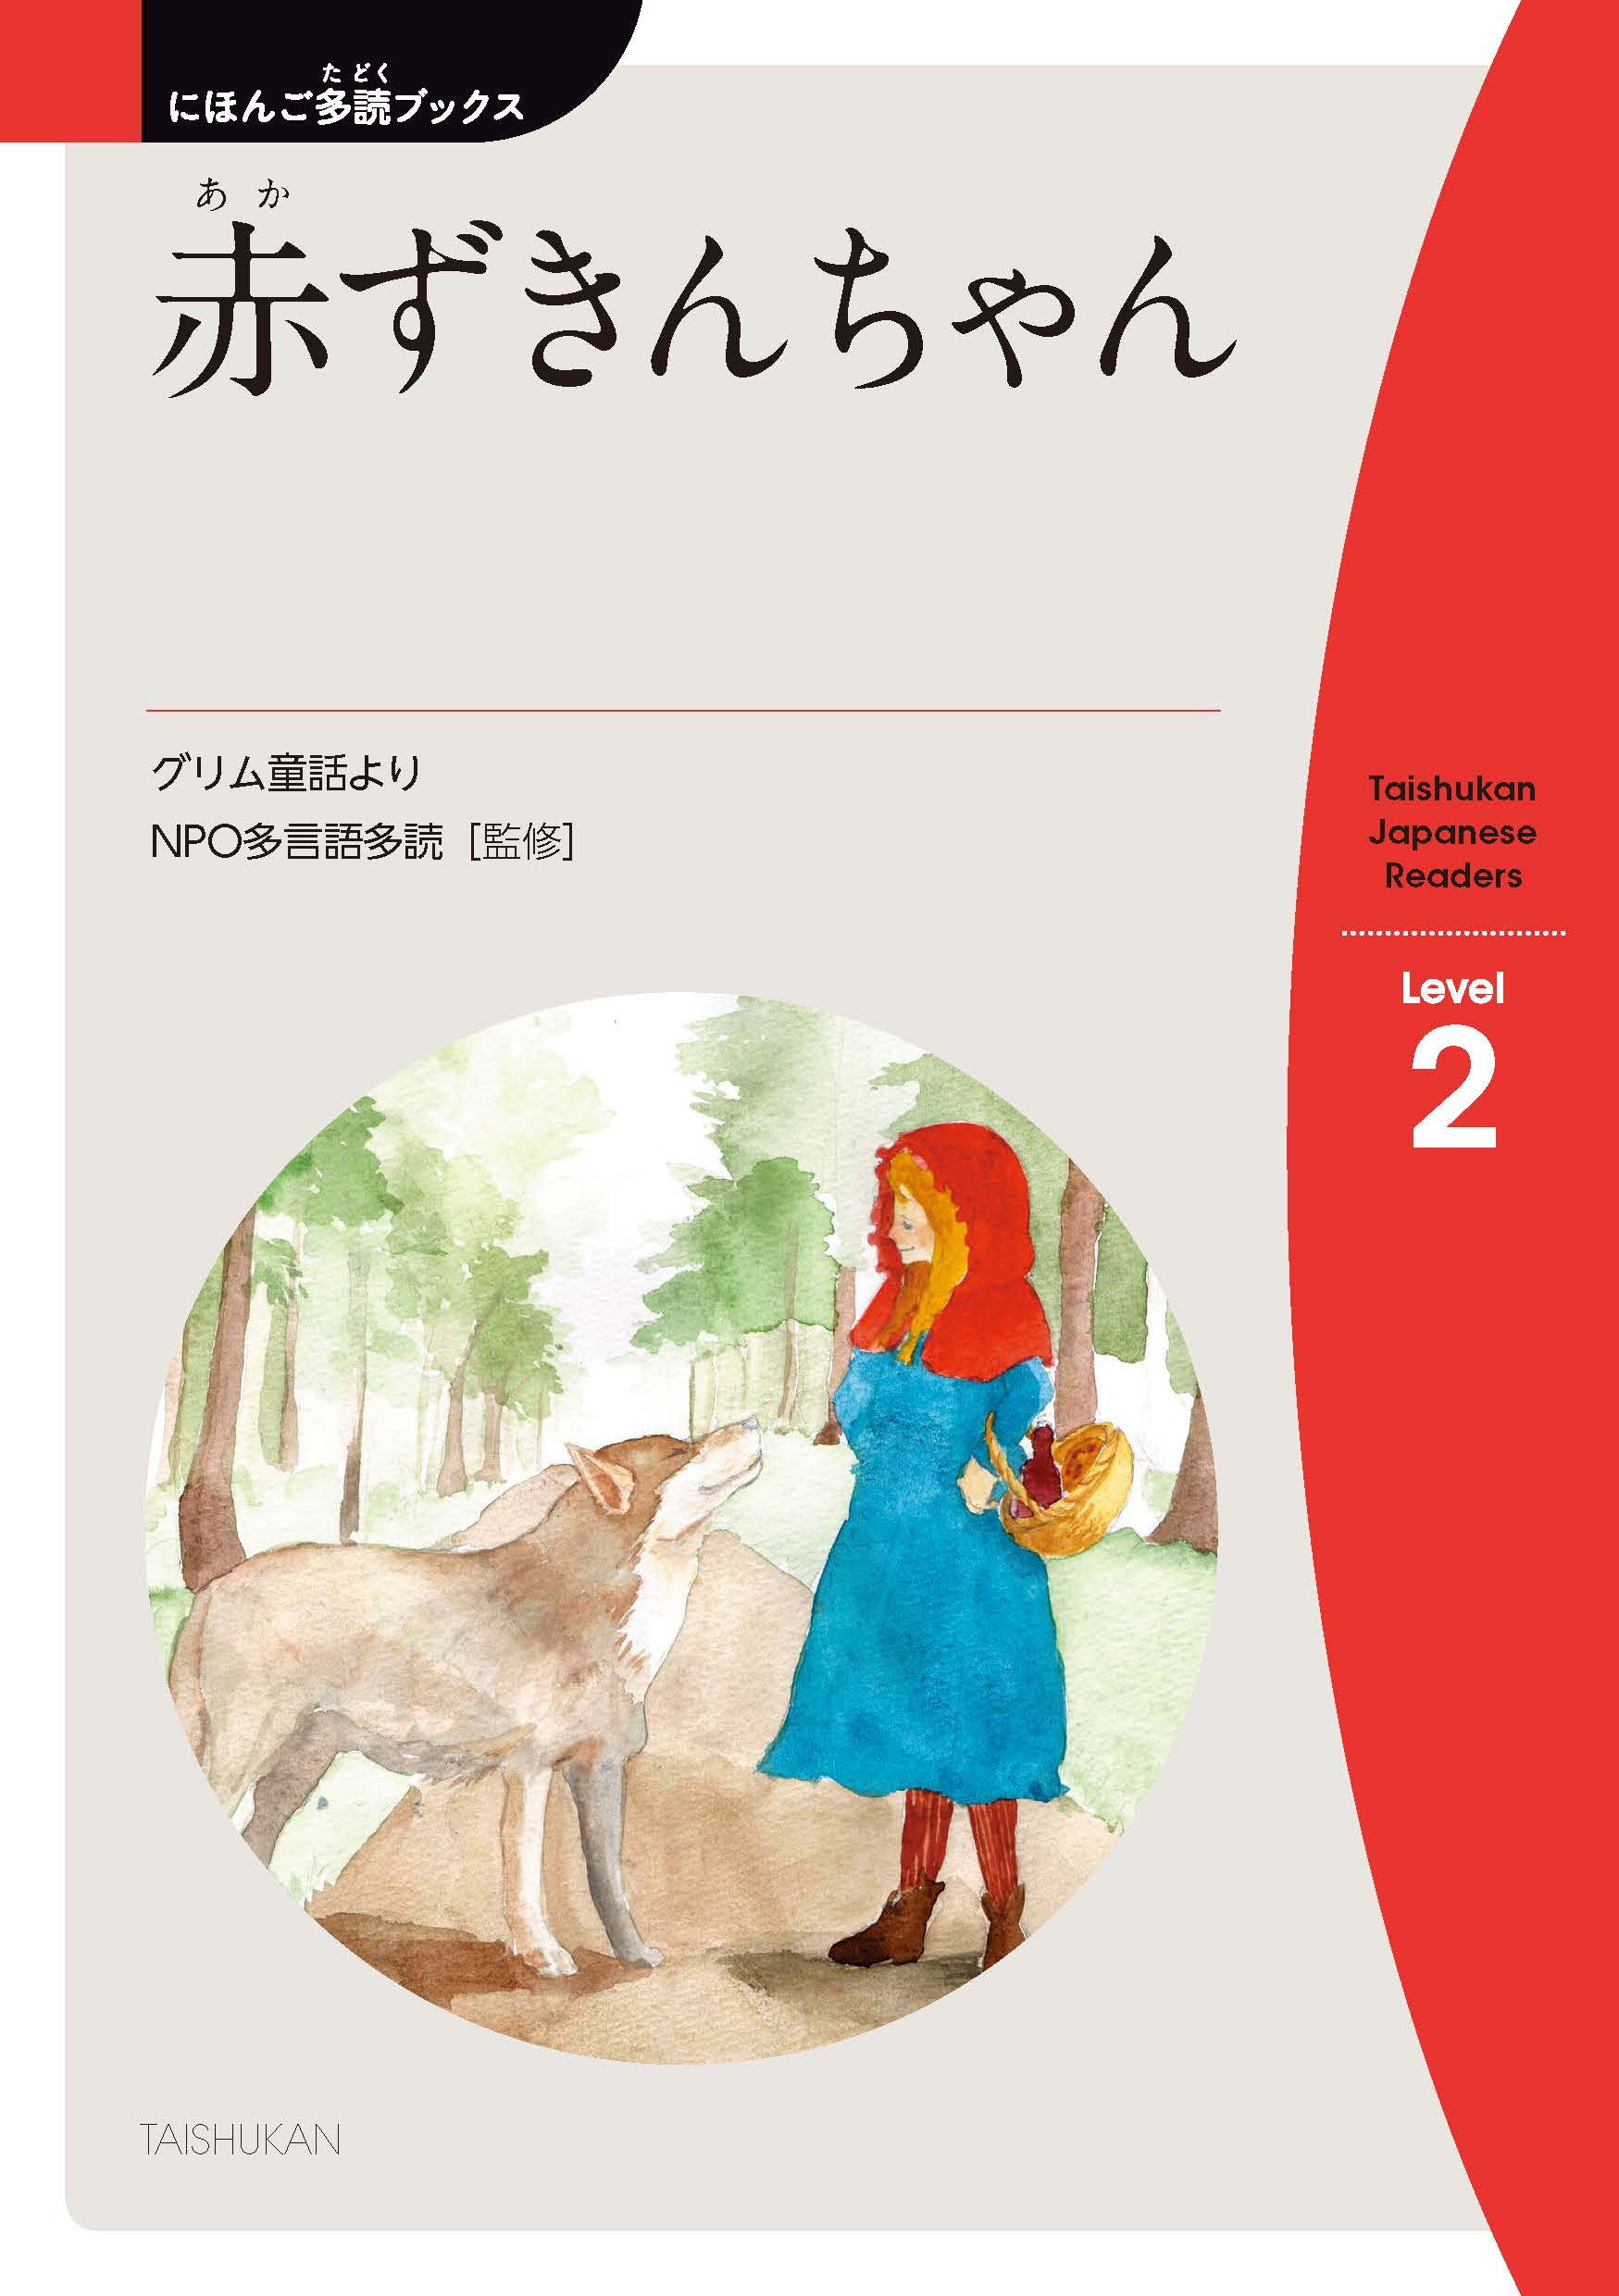 vol.1-7 赤(あか)ずきんちゃん Little Red Riding Hood